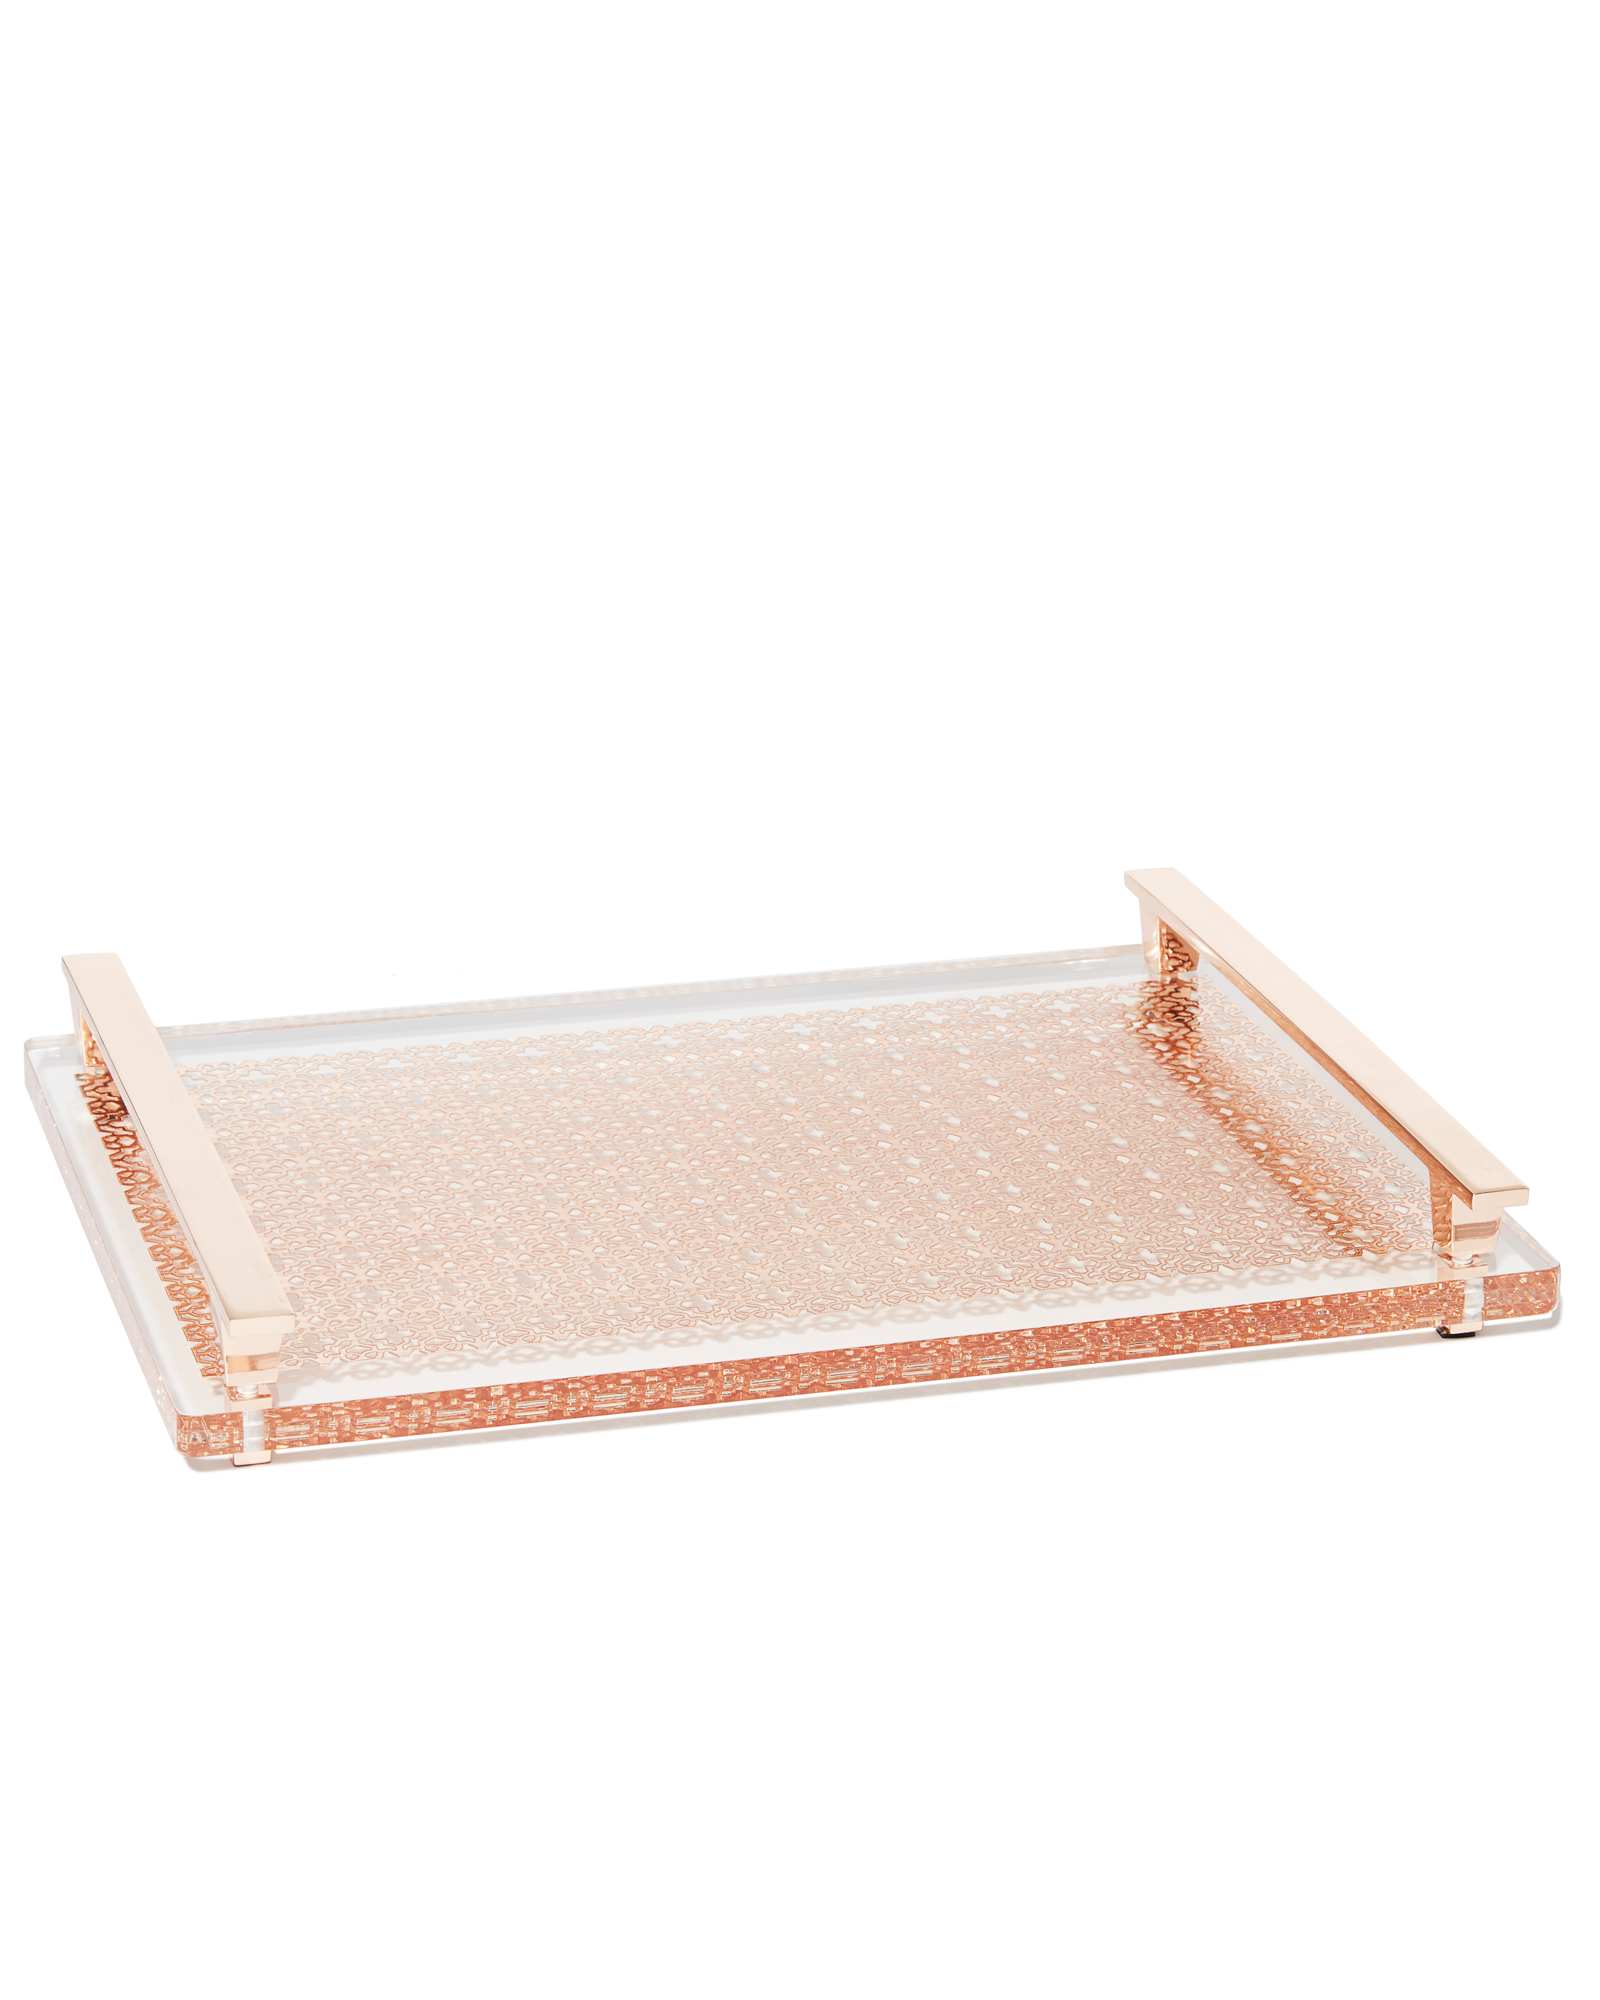 Decorative Tray Gorgeous Thoughtfully Crafted With Our Signature Filigree And Rose Gold Design Inspiration